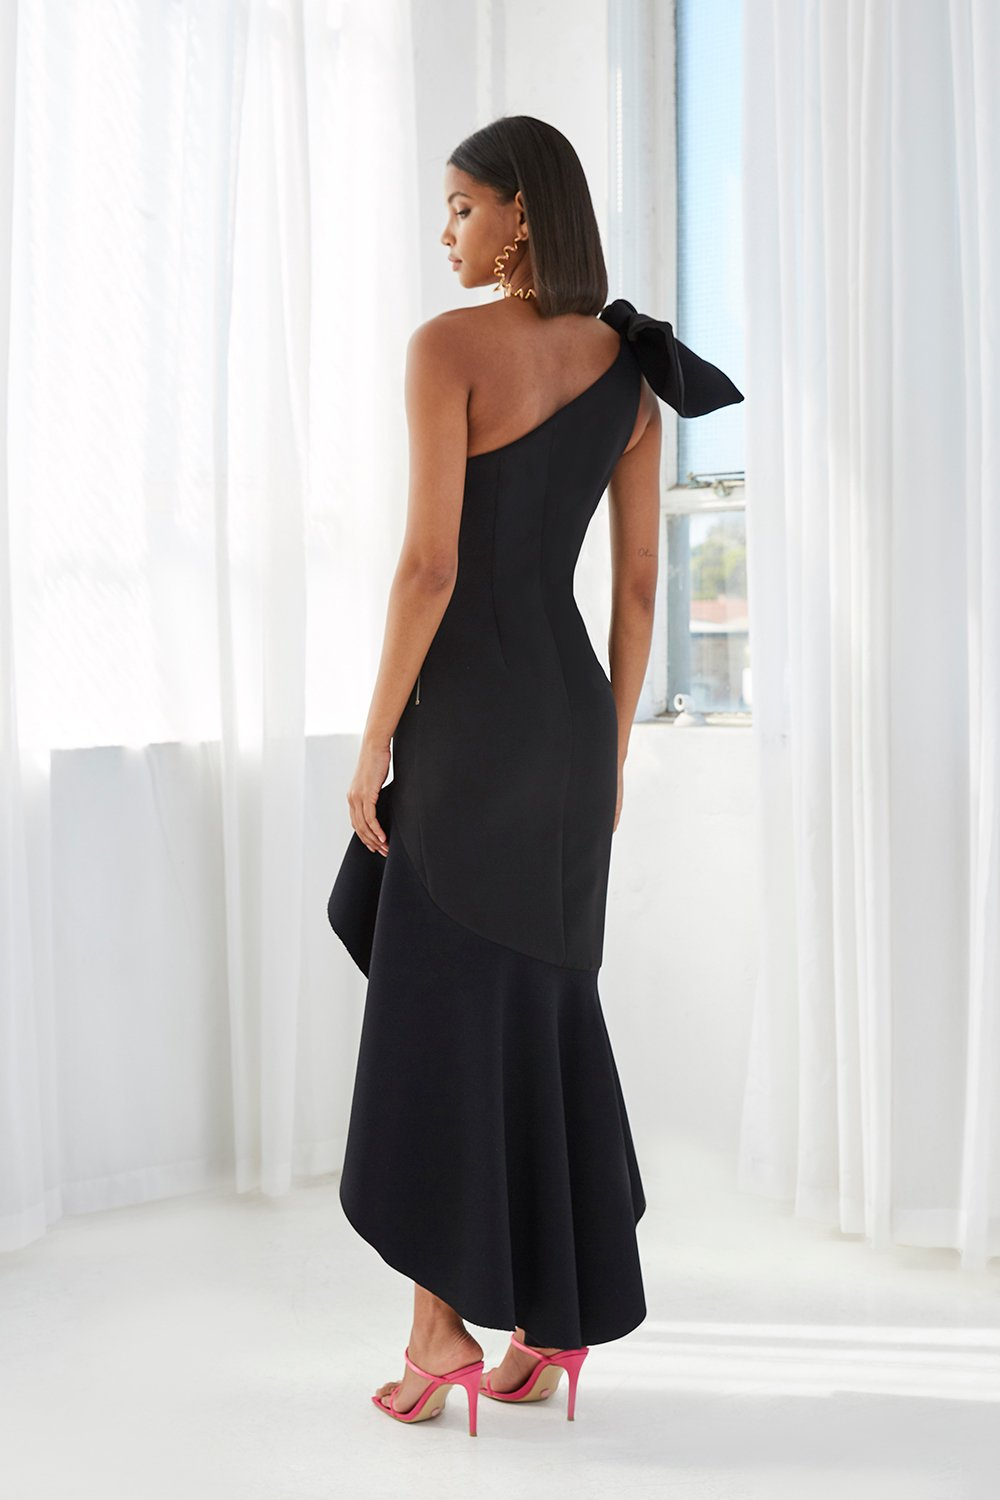 BY JOHNNY TIE SHOULDER WAVE GOWN